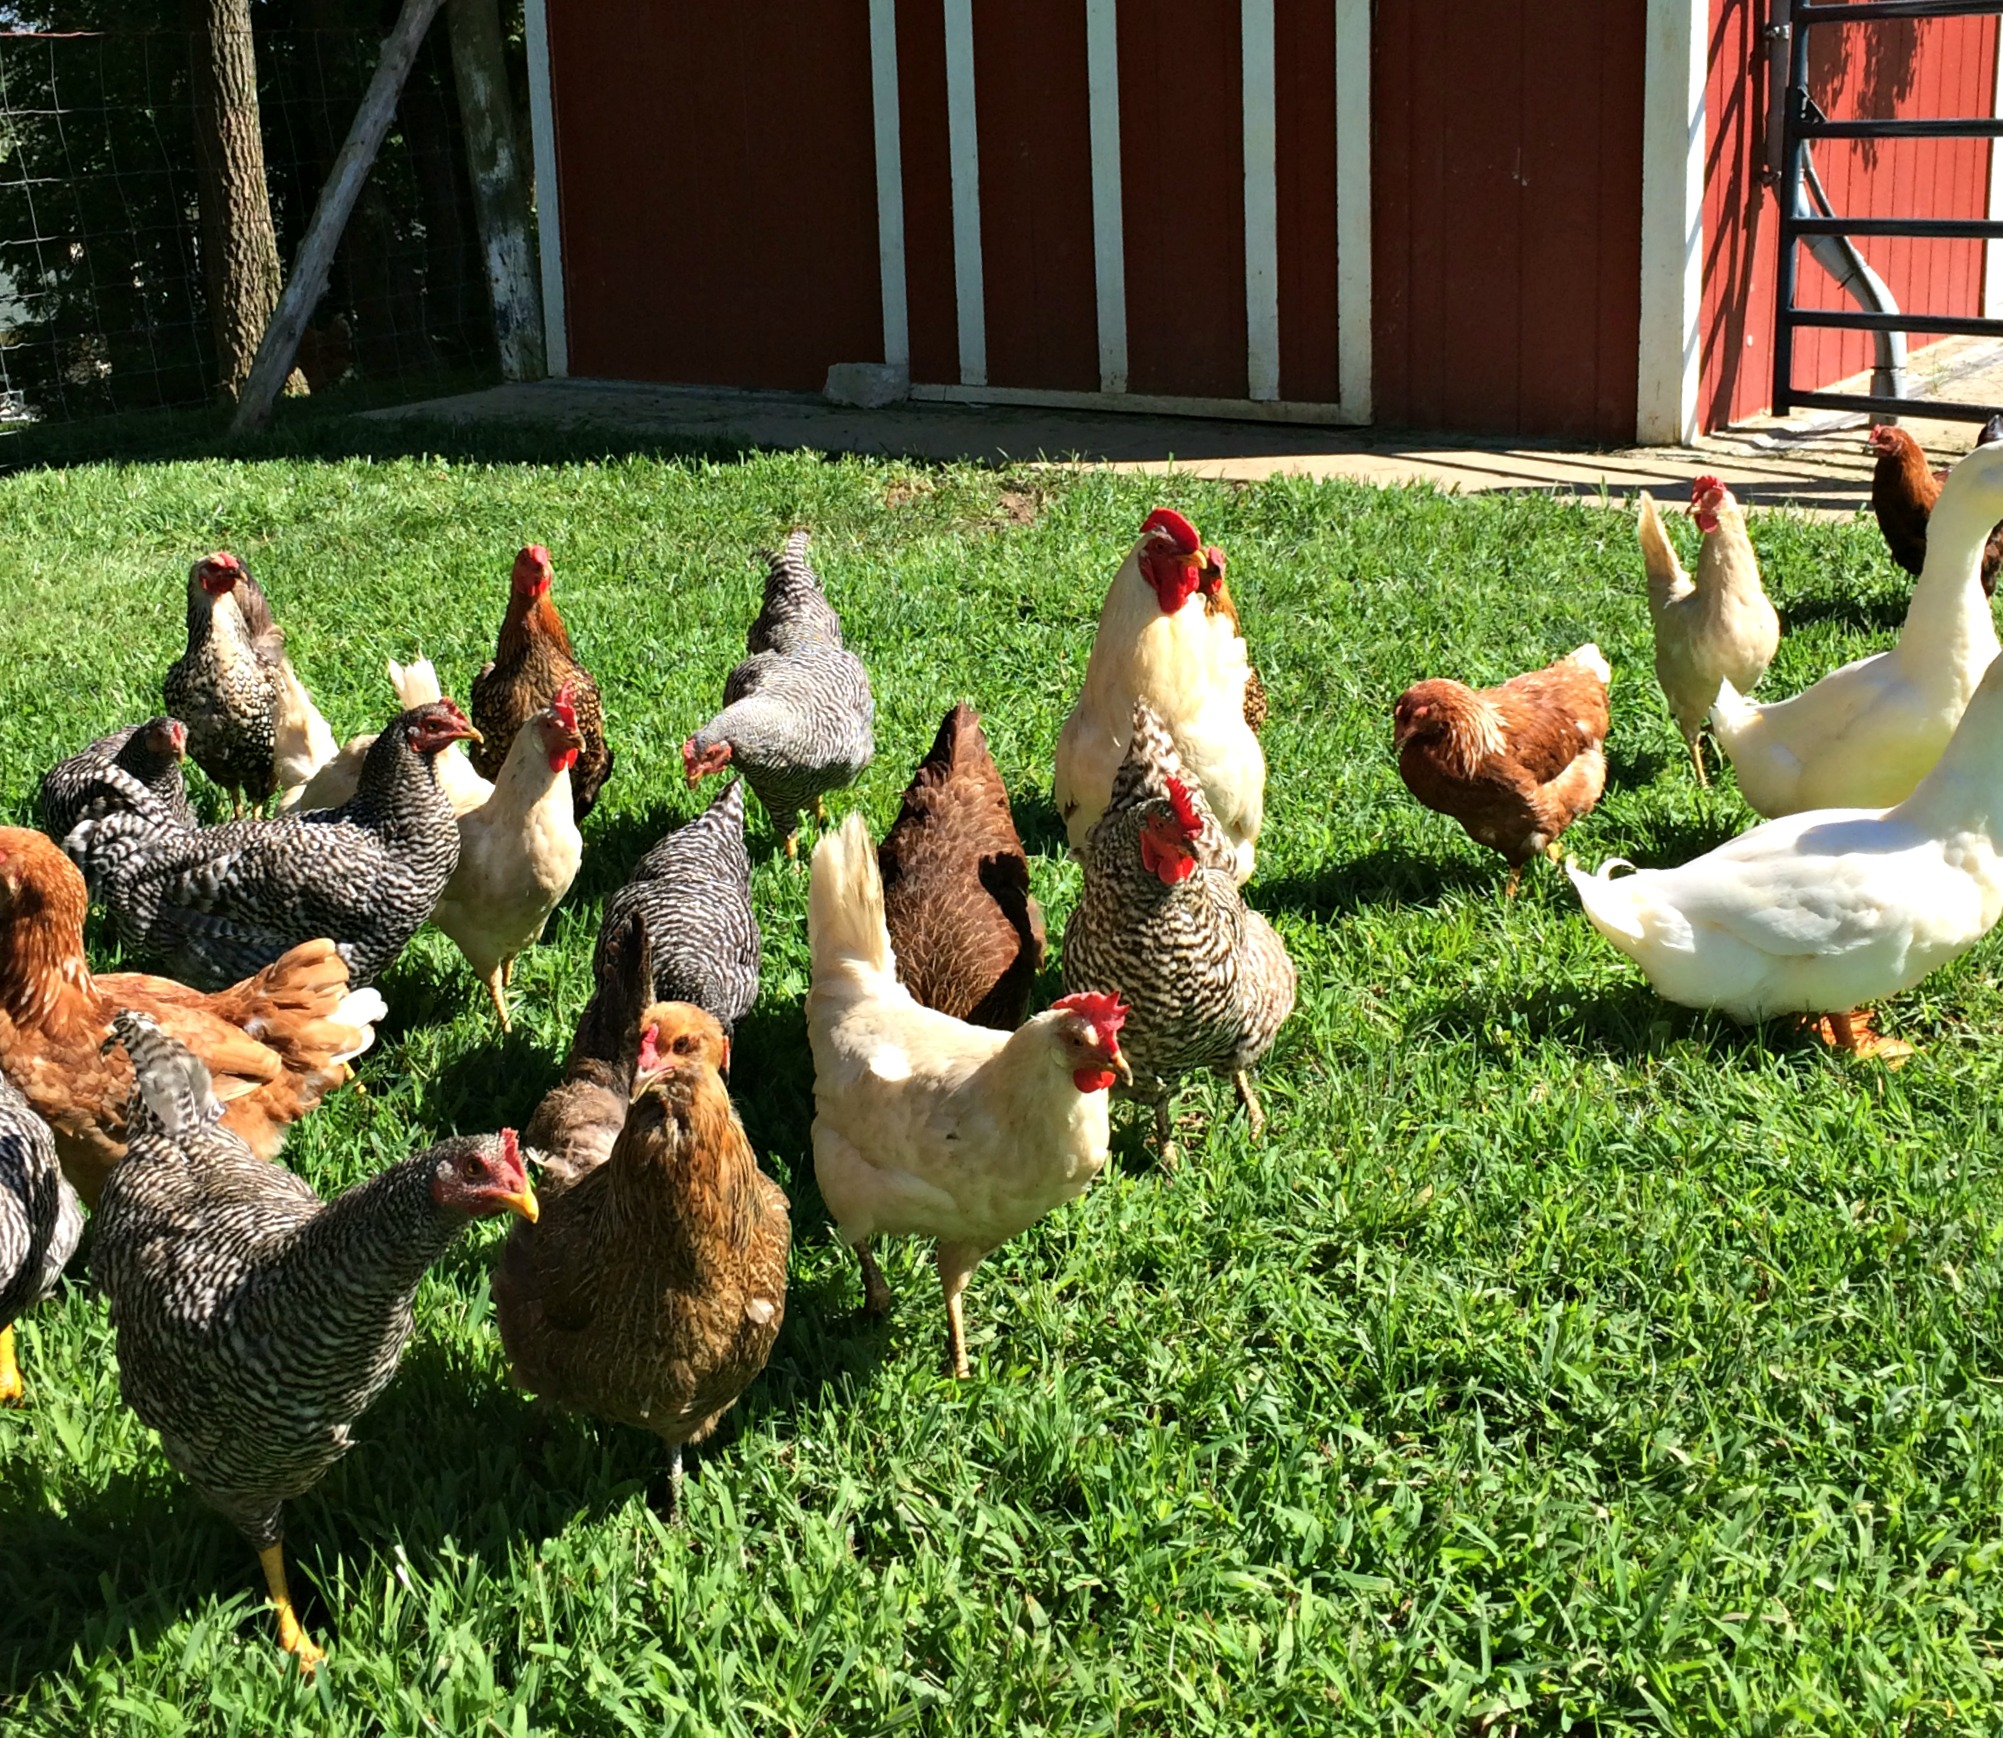 How To Keep Chickens Out Of The Garden